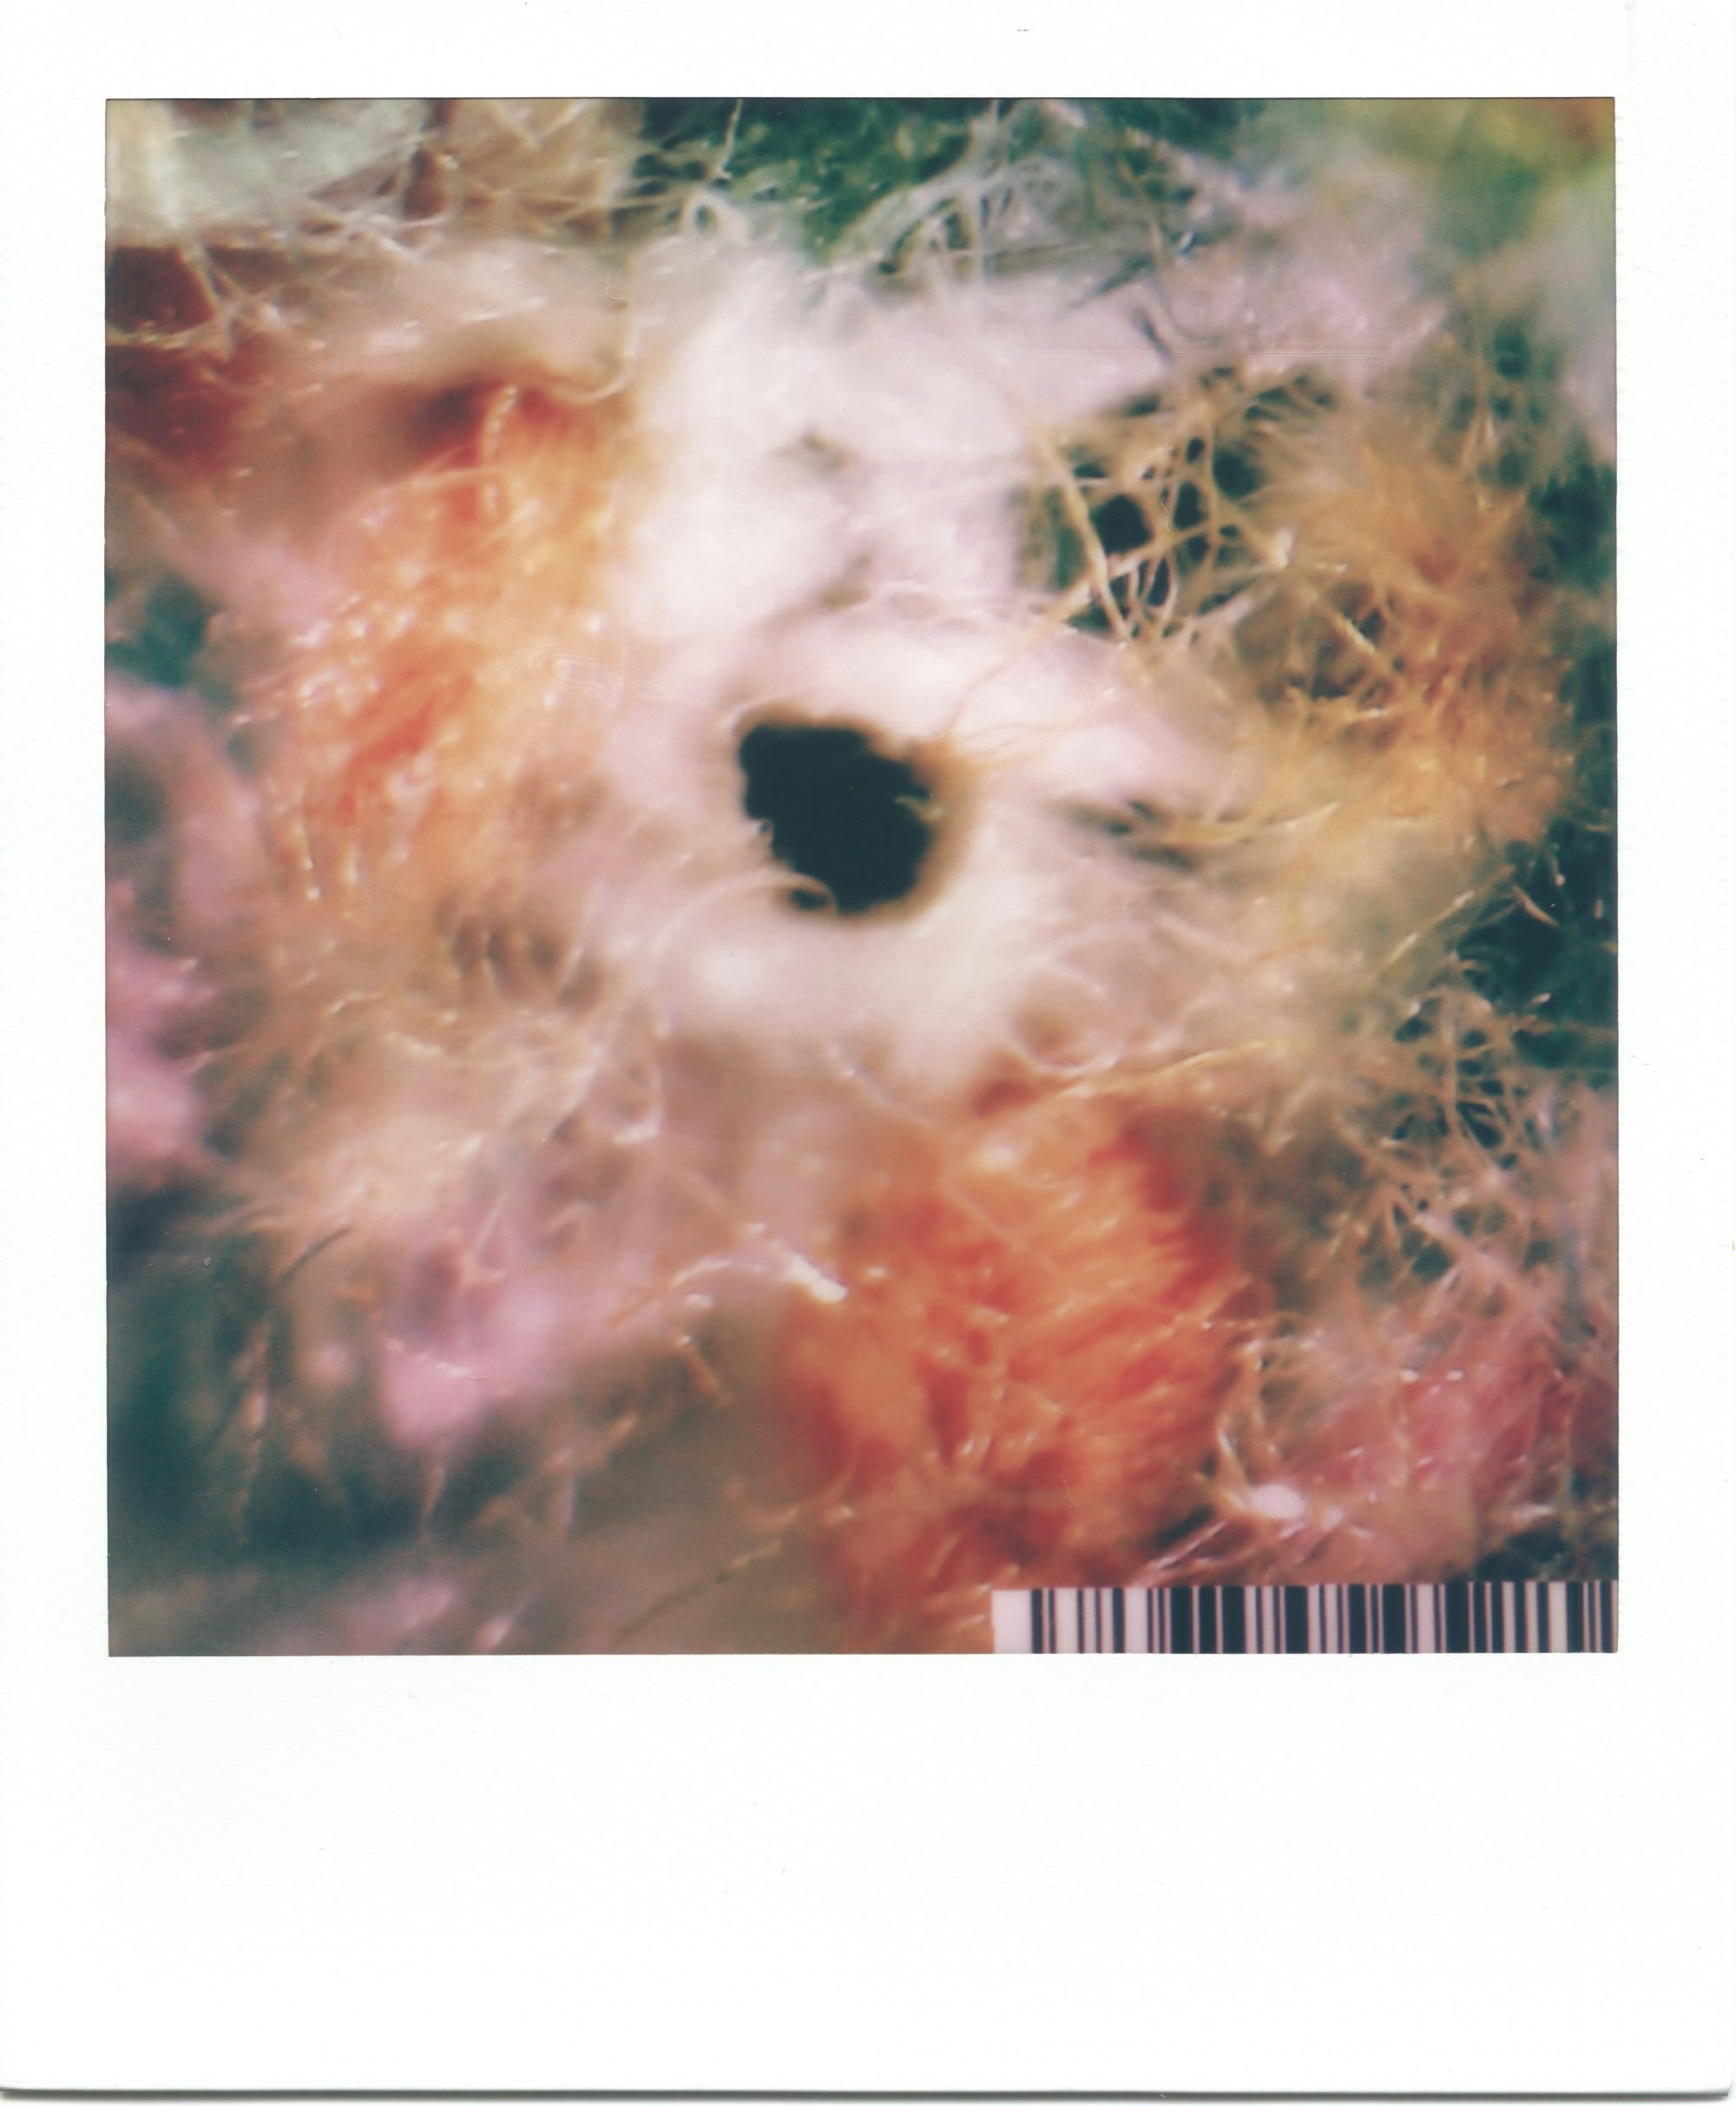 In a white polaroid print frame, is an image of highly magnified textile fibres. A small black hole sits at the centre of the image. It's surrounded by a swirl of white, yellow and orange fibres that expand out of the frame. Green fibres slightly peek through from behind. A small barcode sits in the bottom right corner.